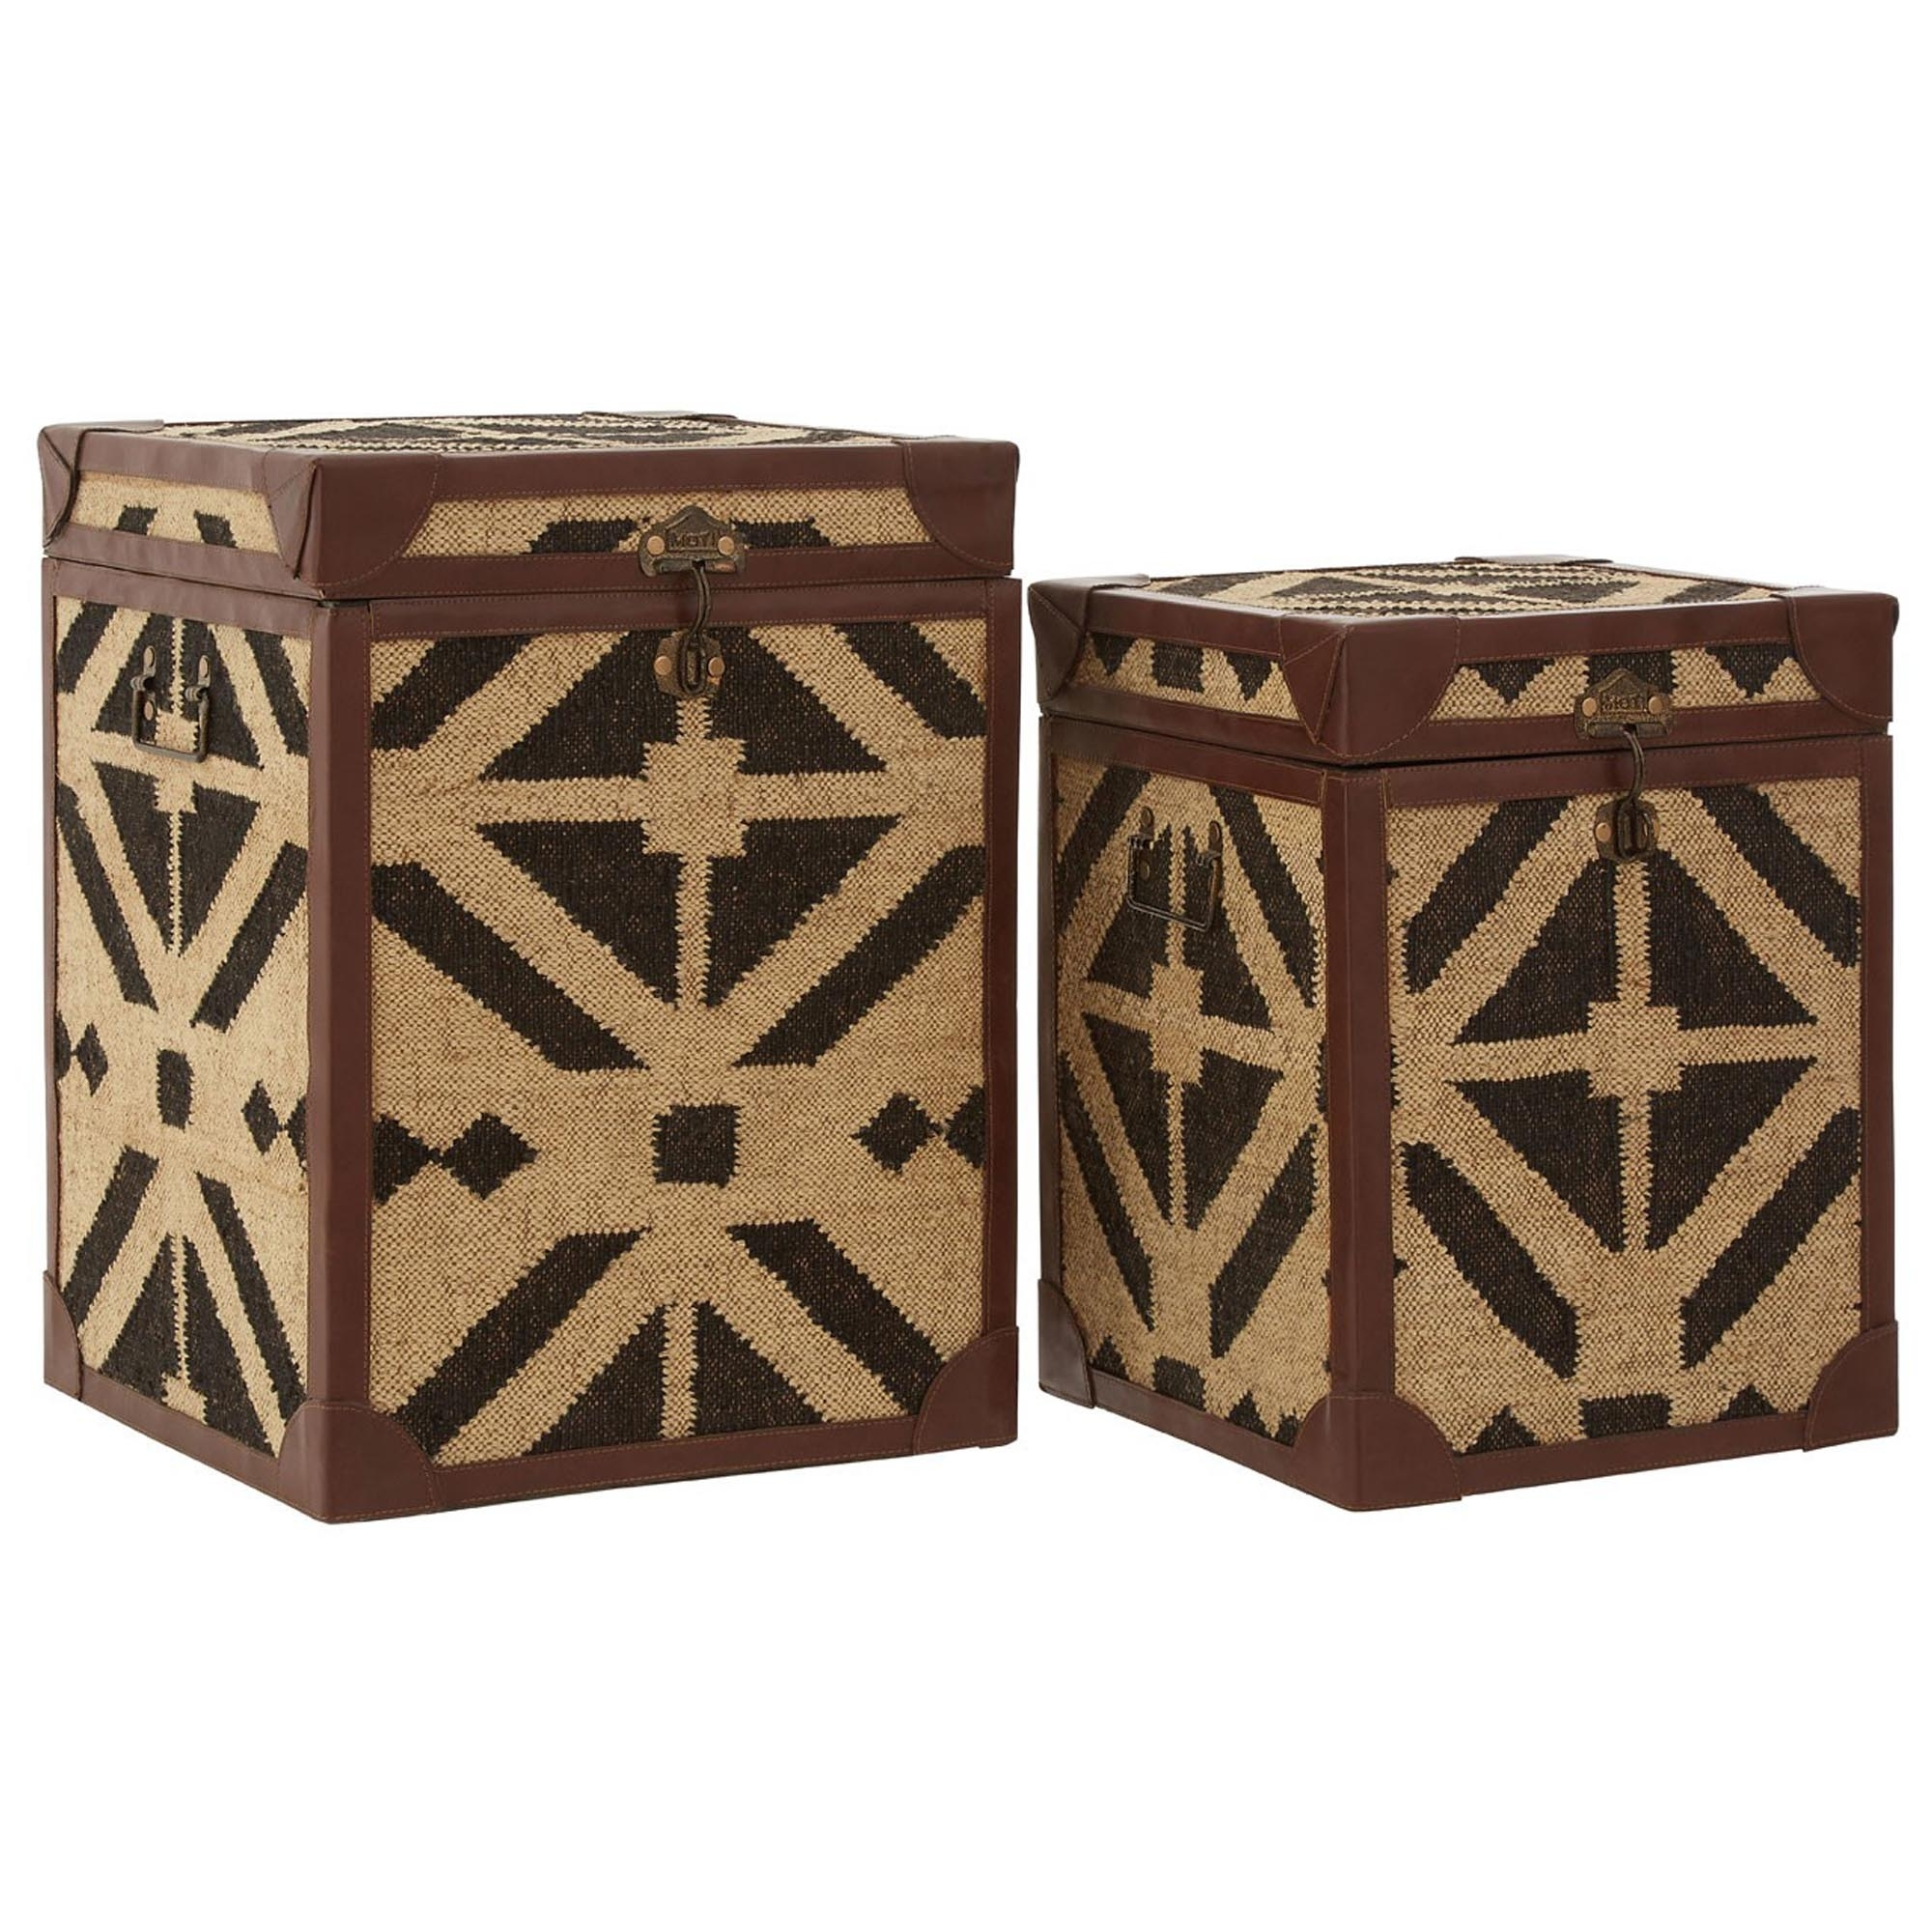 Aztec Storage Trunks